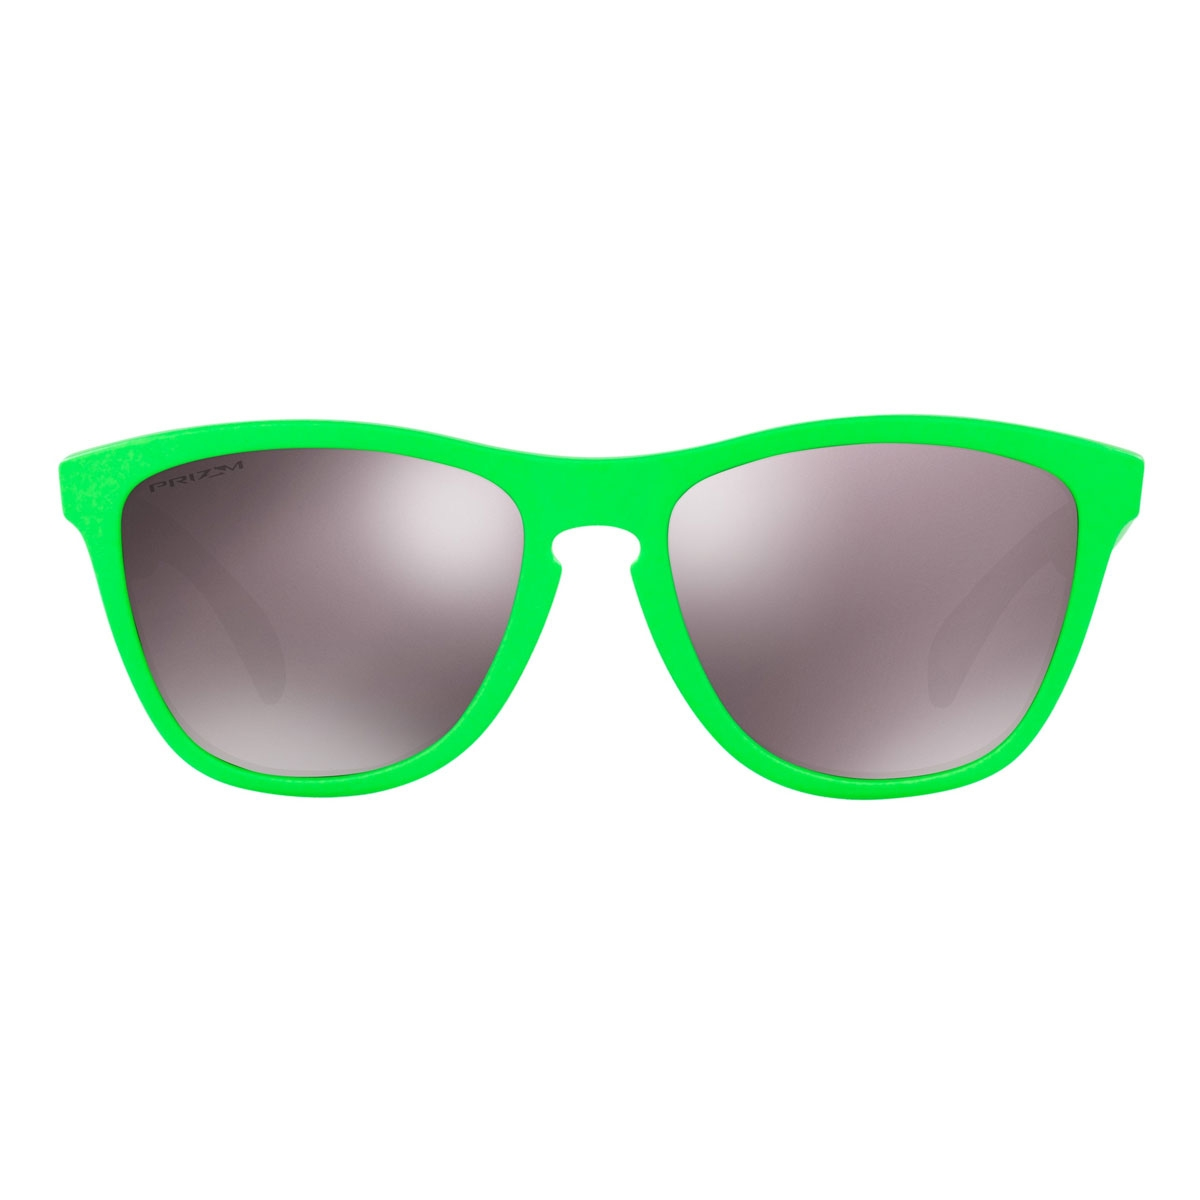 c37c128bd0 ... new arrivals image of oakley frogskins prizm daily polarized sunglasses  green fade frame prizm daily polarized ...